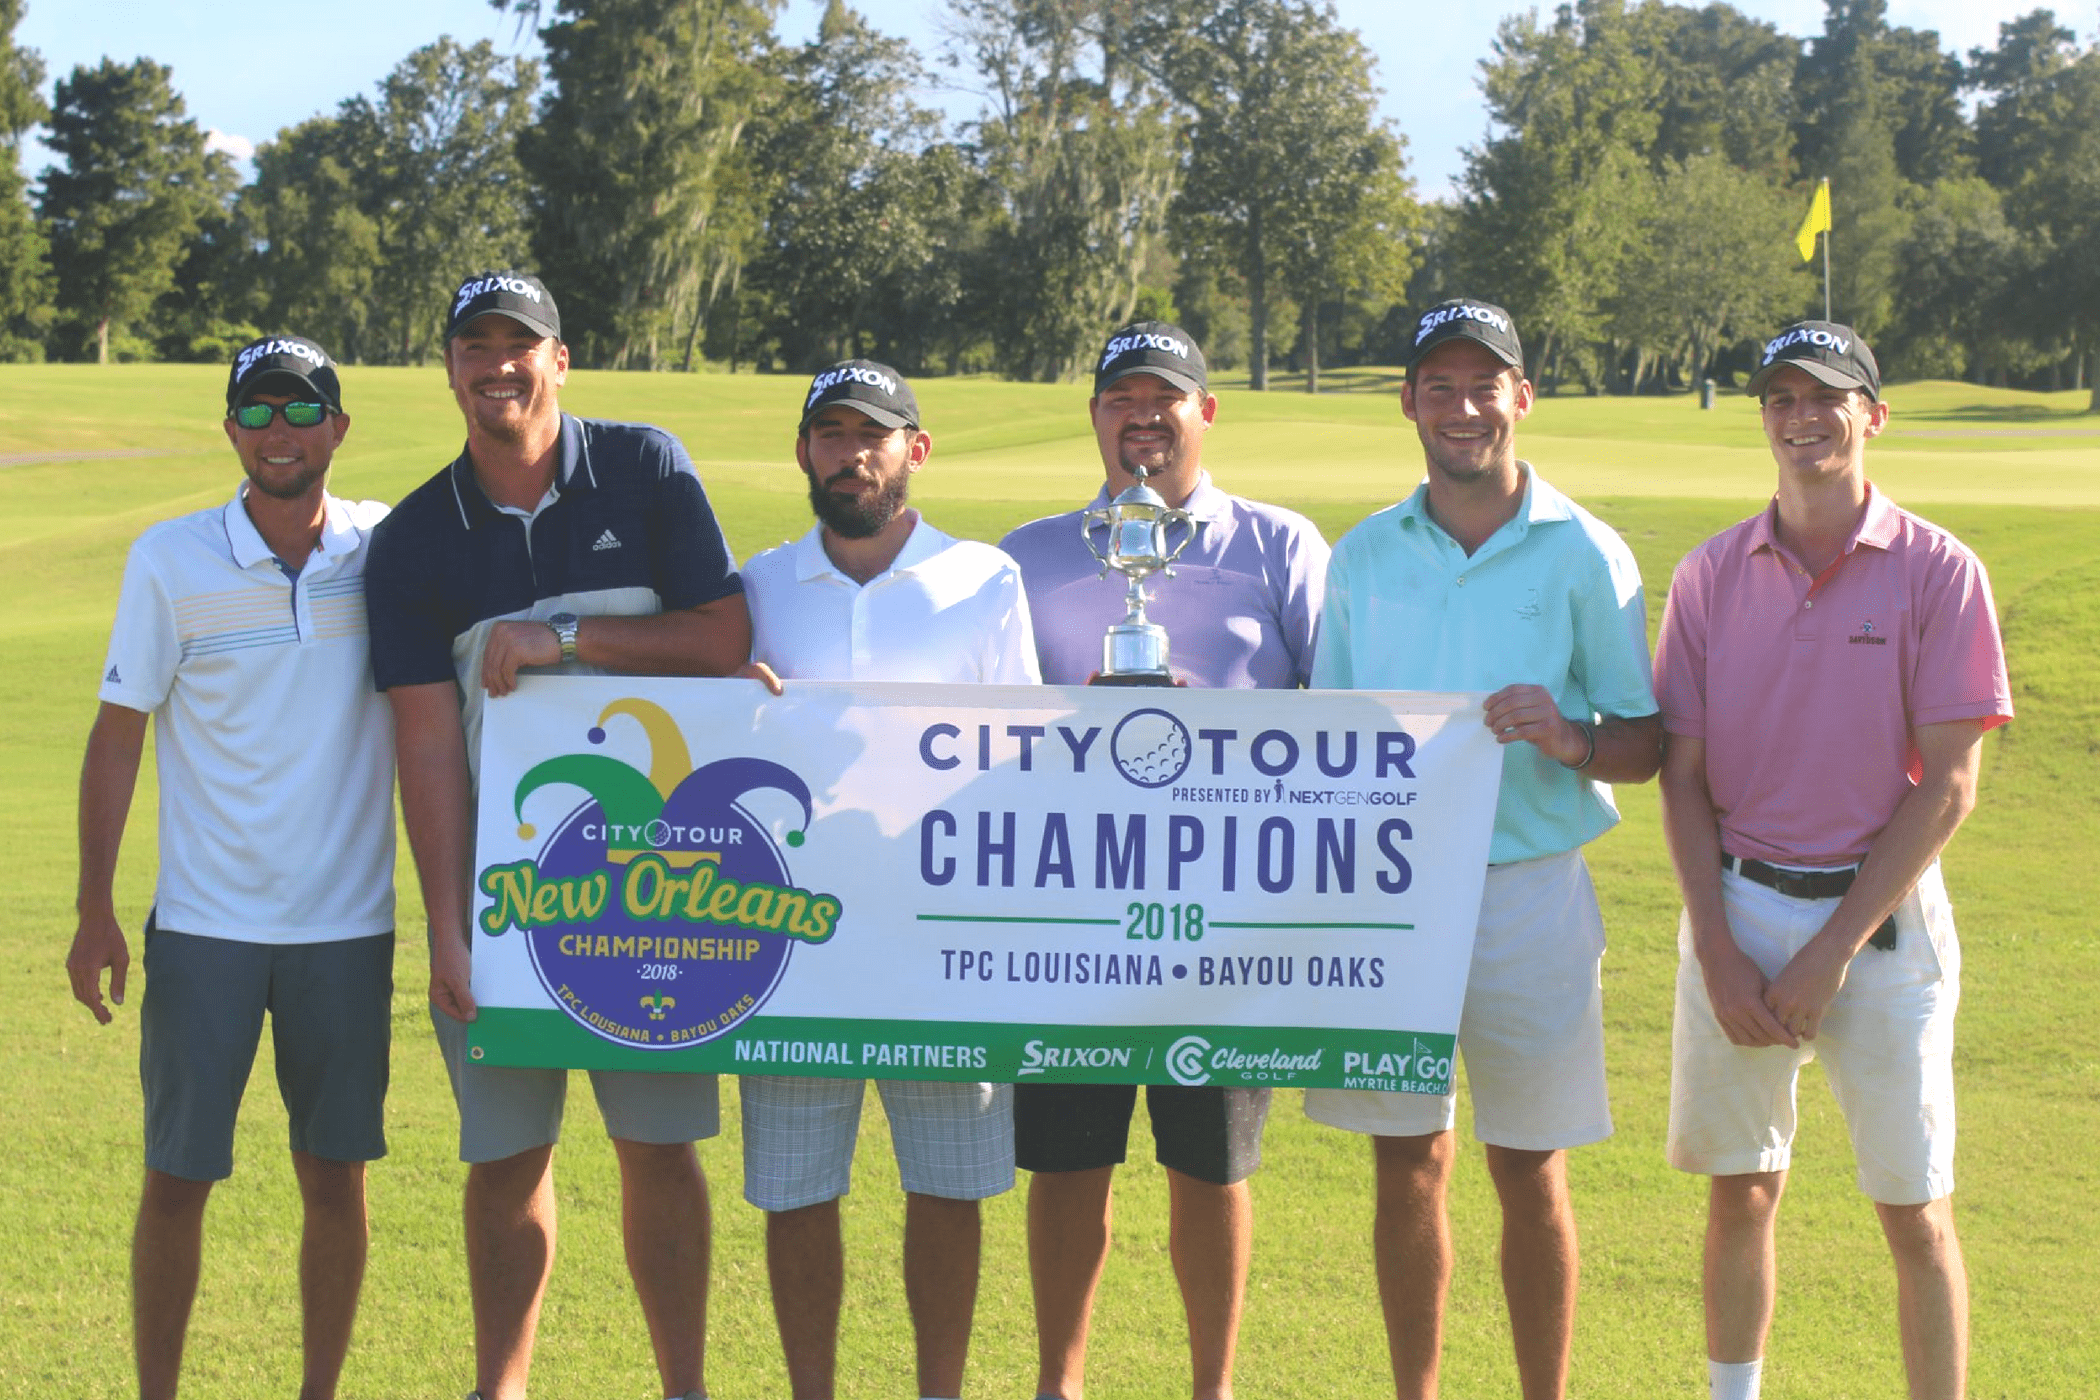 2018 City Tour Chmampions Scramble